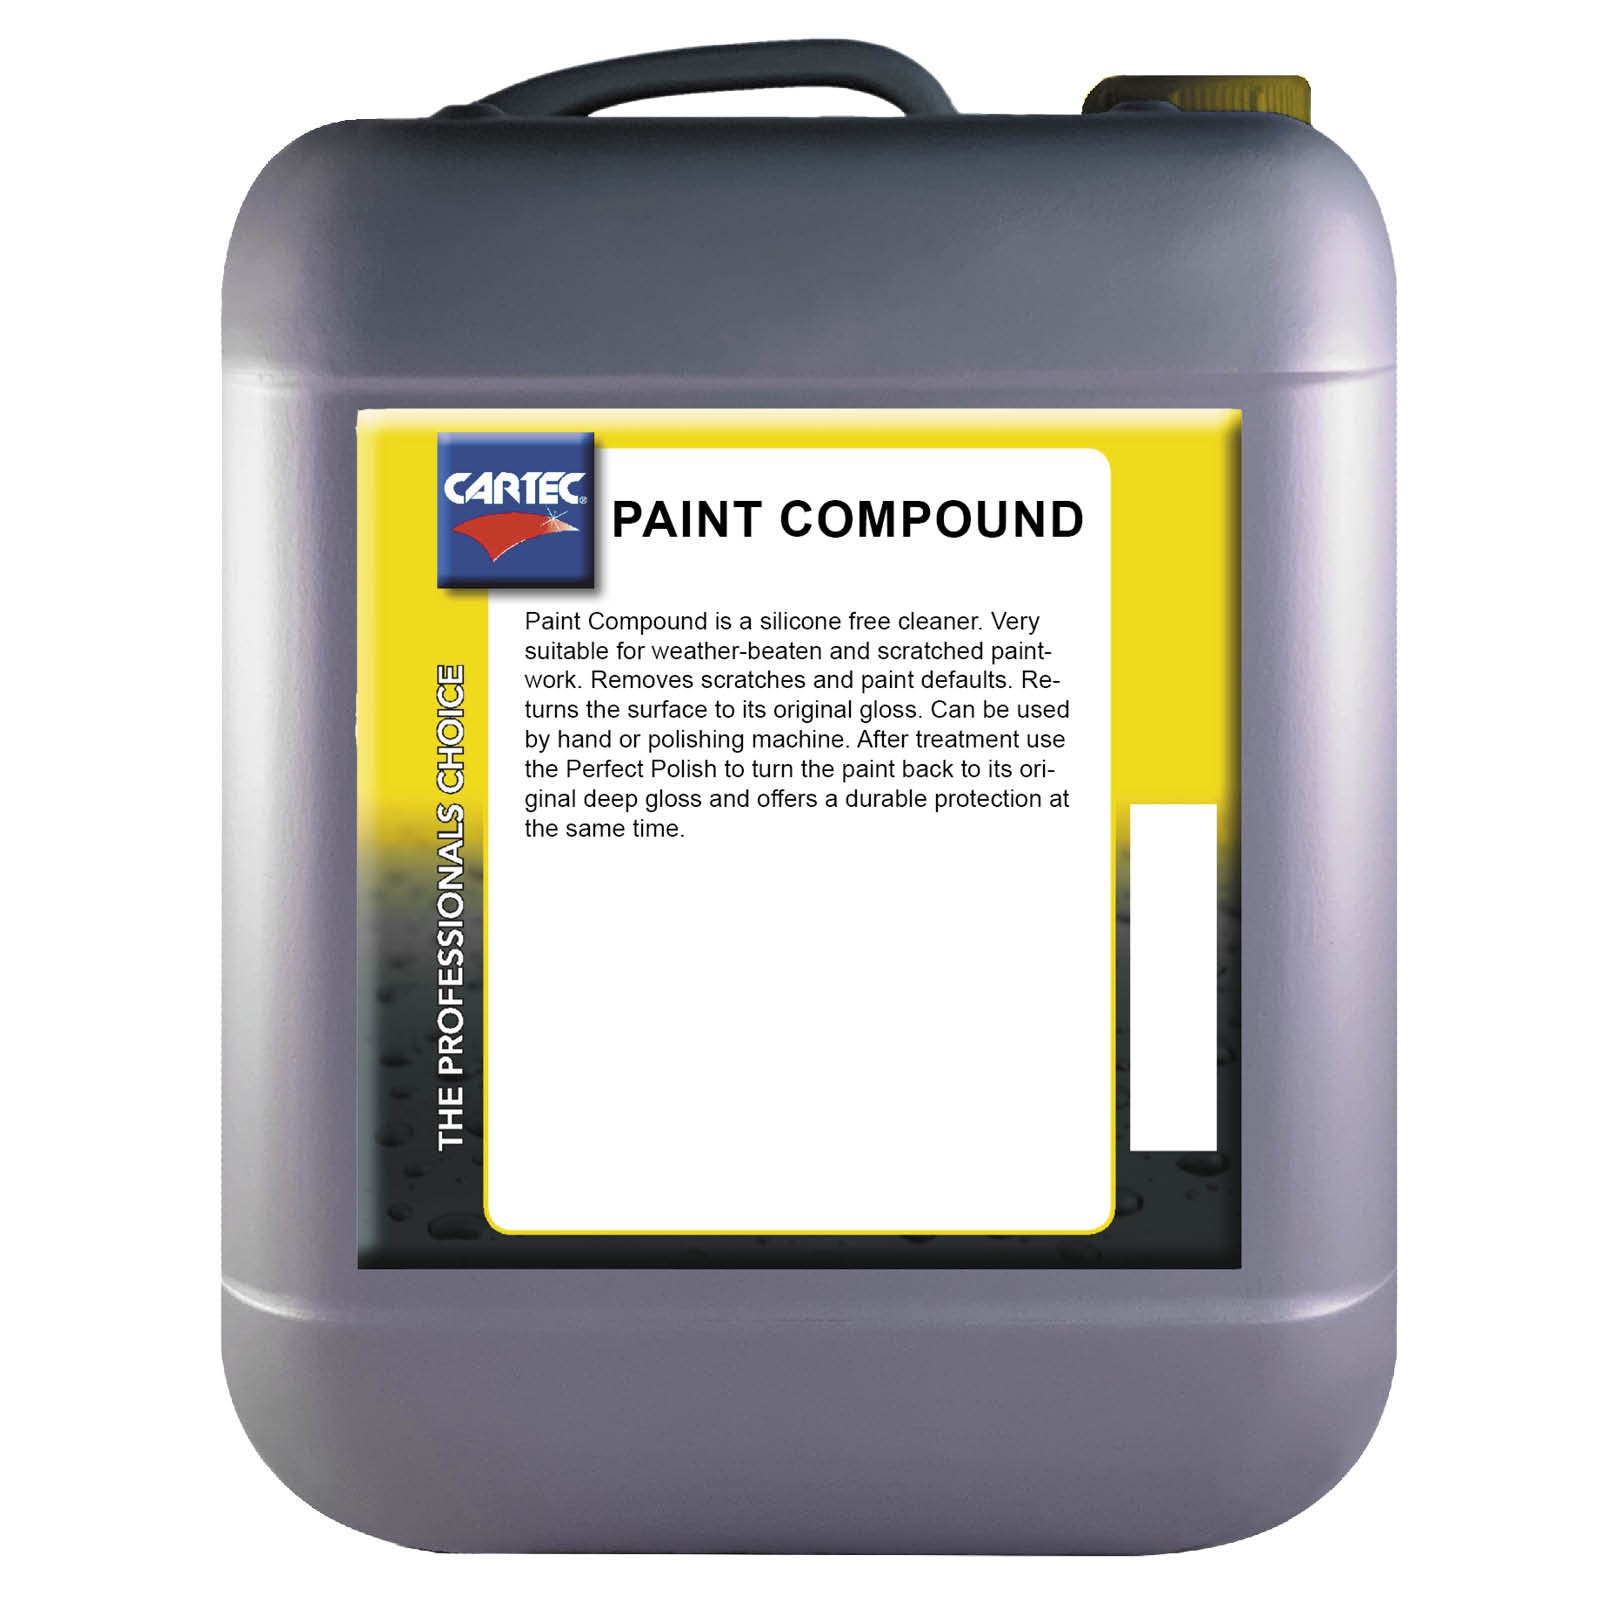 Paint Compound